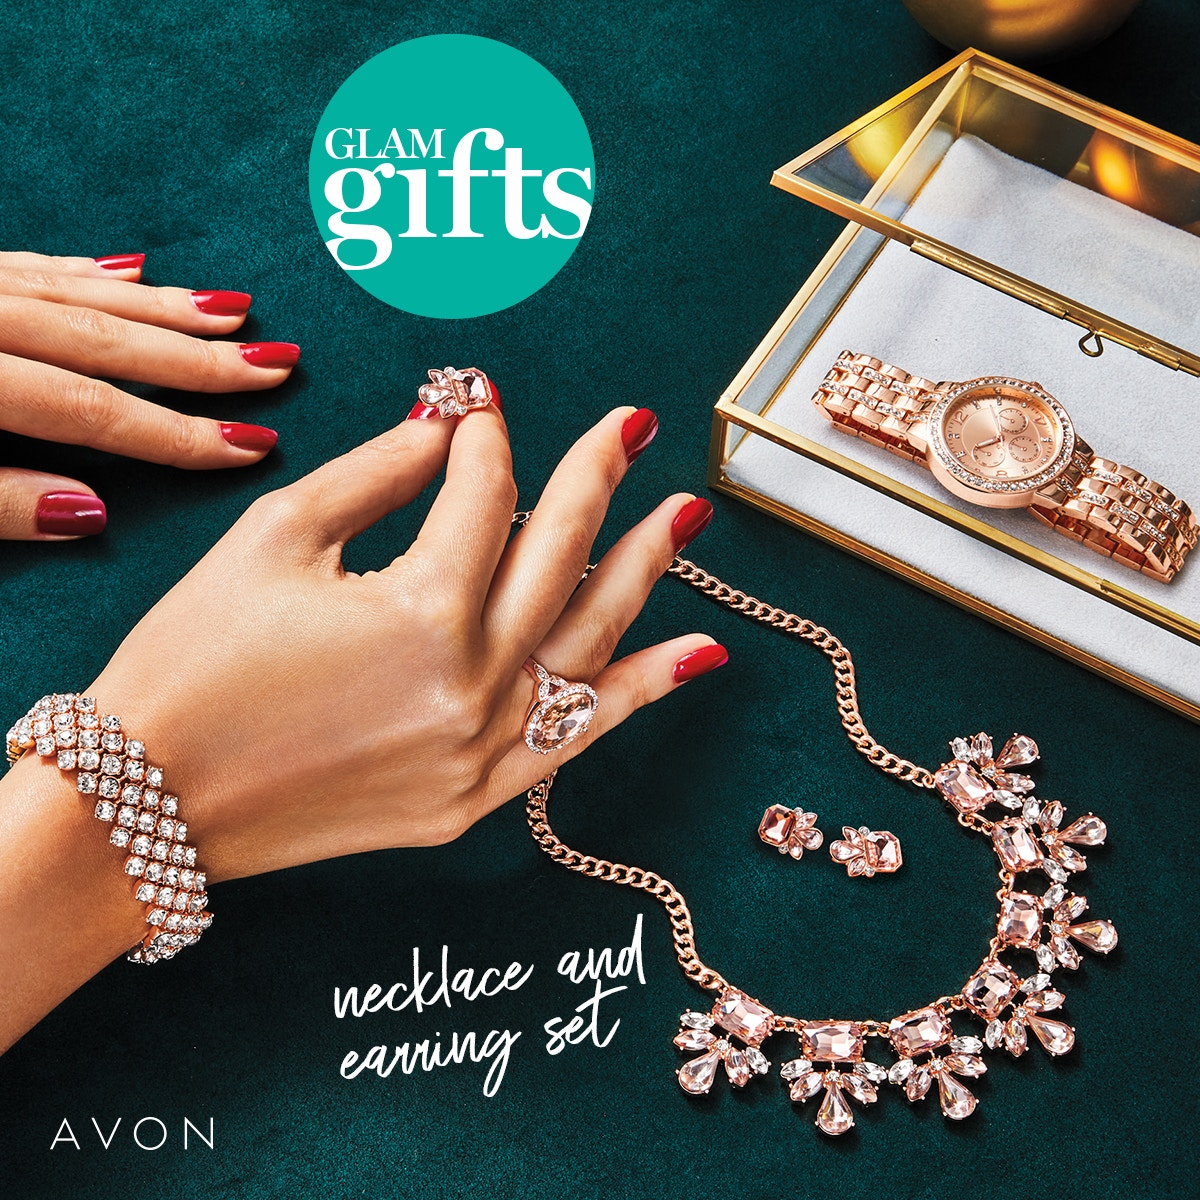 #Blushing_Statement_Stretch_Bracelet. #Fall_in_love at first #blush with our #rose_goldtone #stretch_bracelet!! #holiday #gifts #family #friends #bossbabe #avonrep #Glam_Gifts